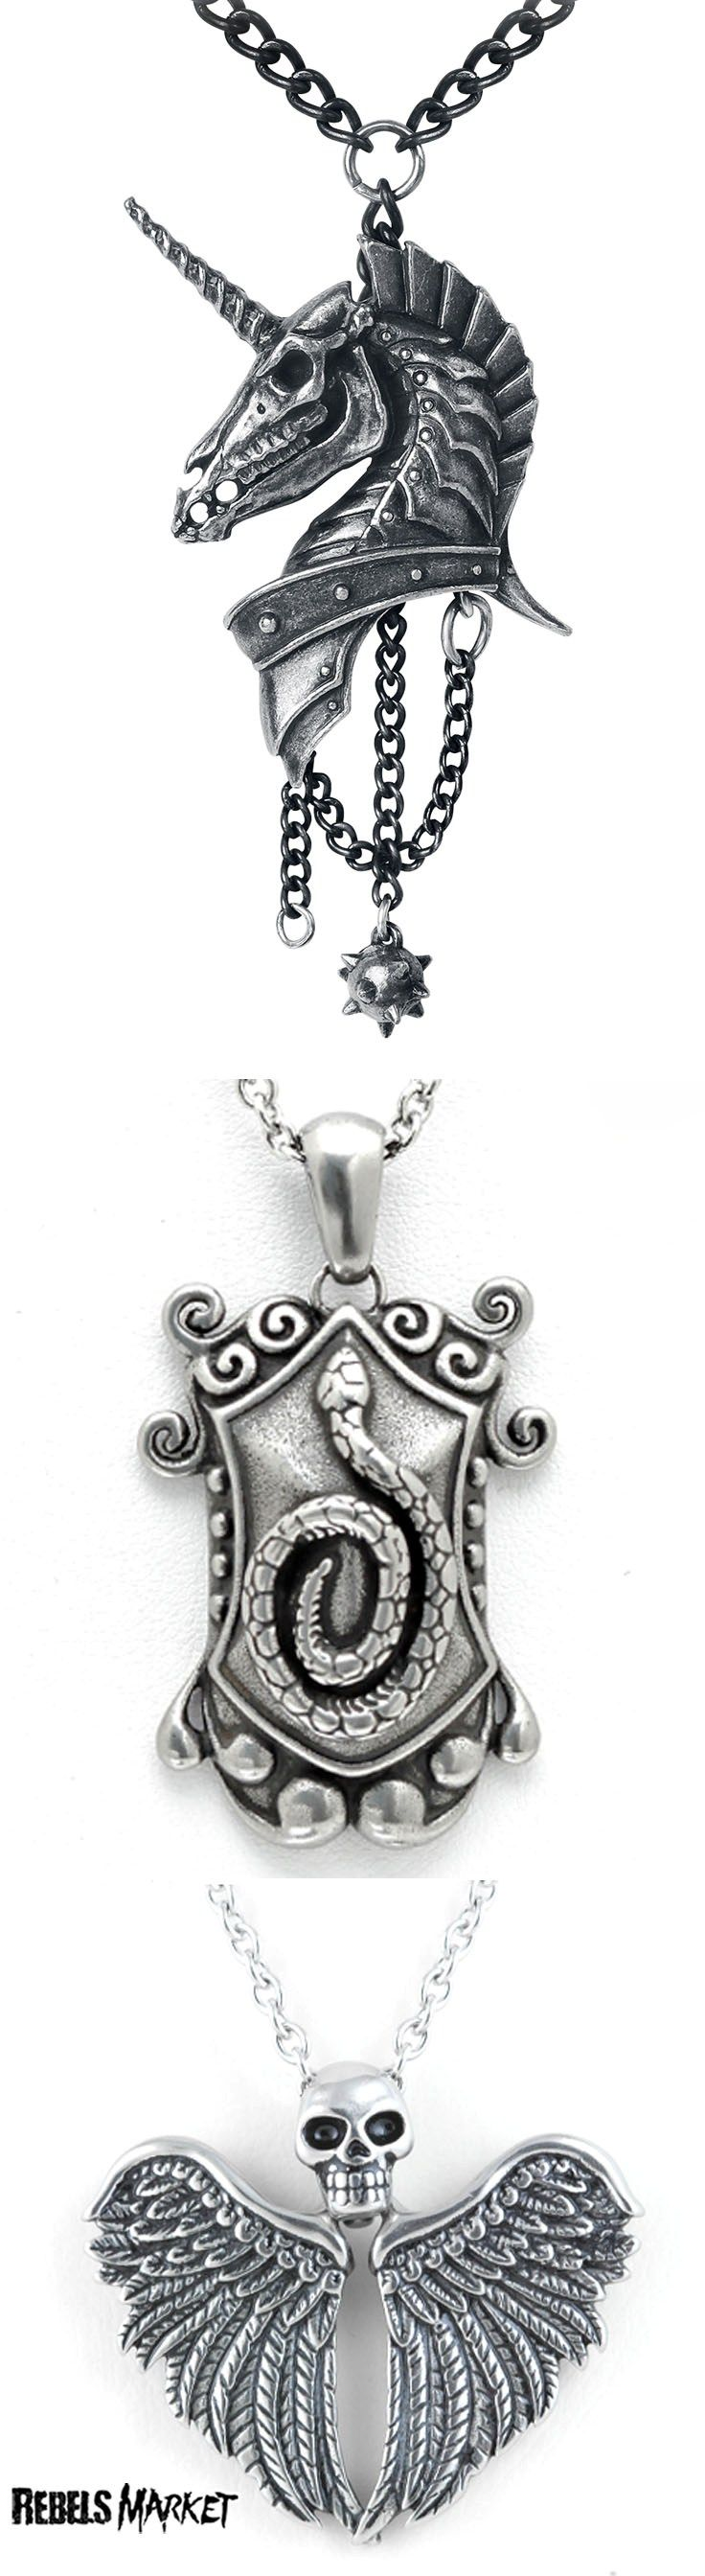 Shop goth jewelry at RebelsMarket.